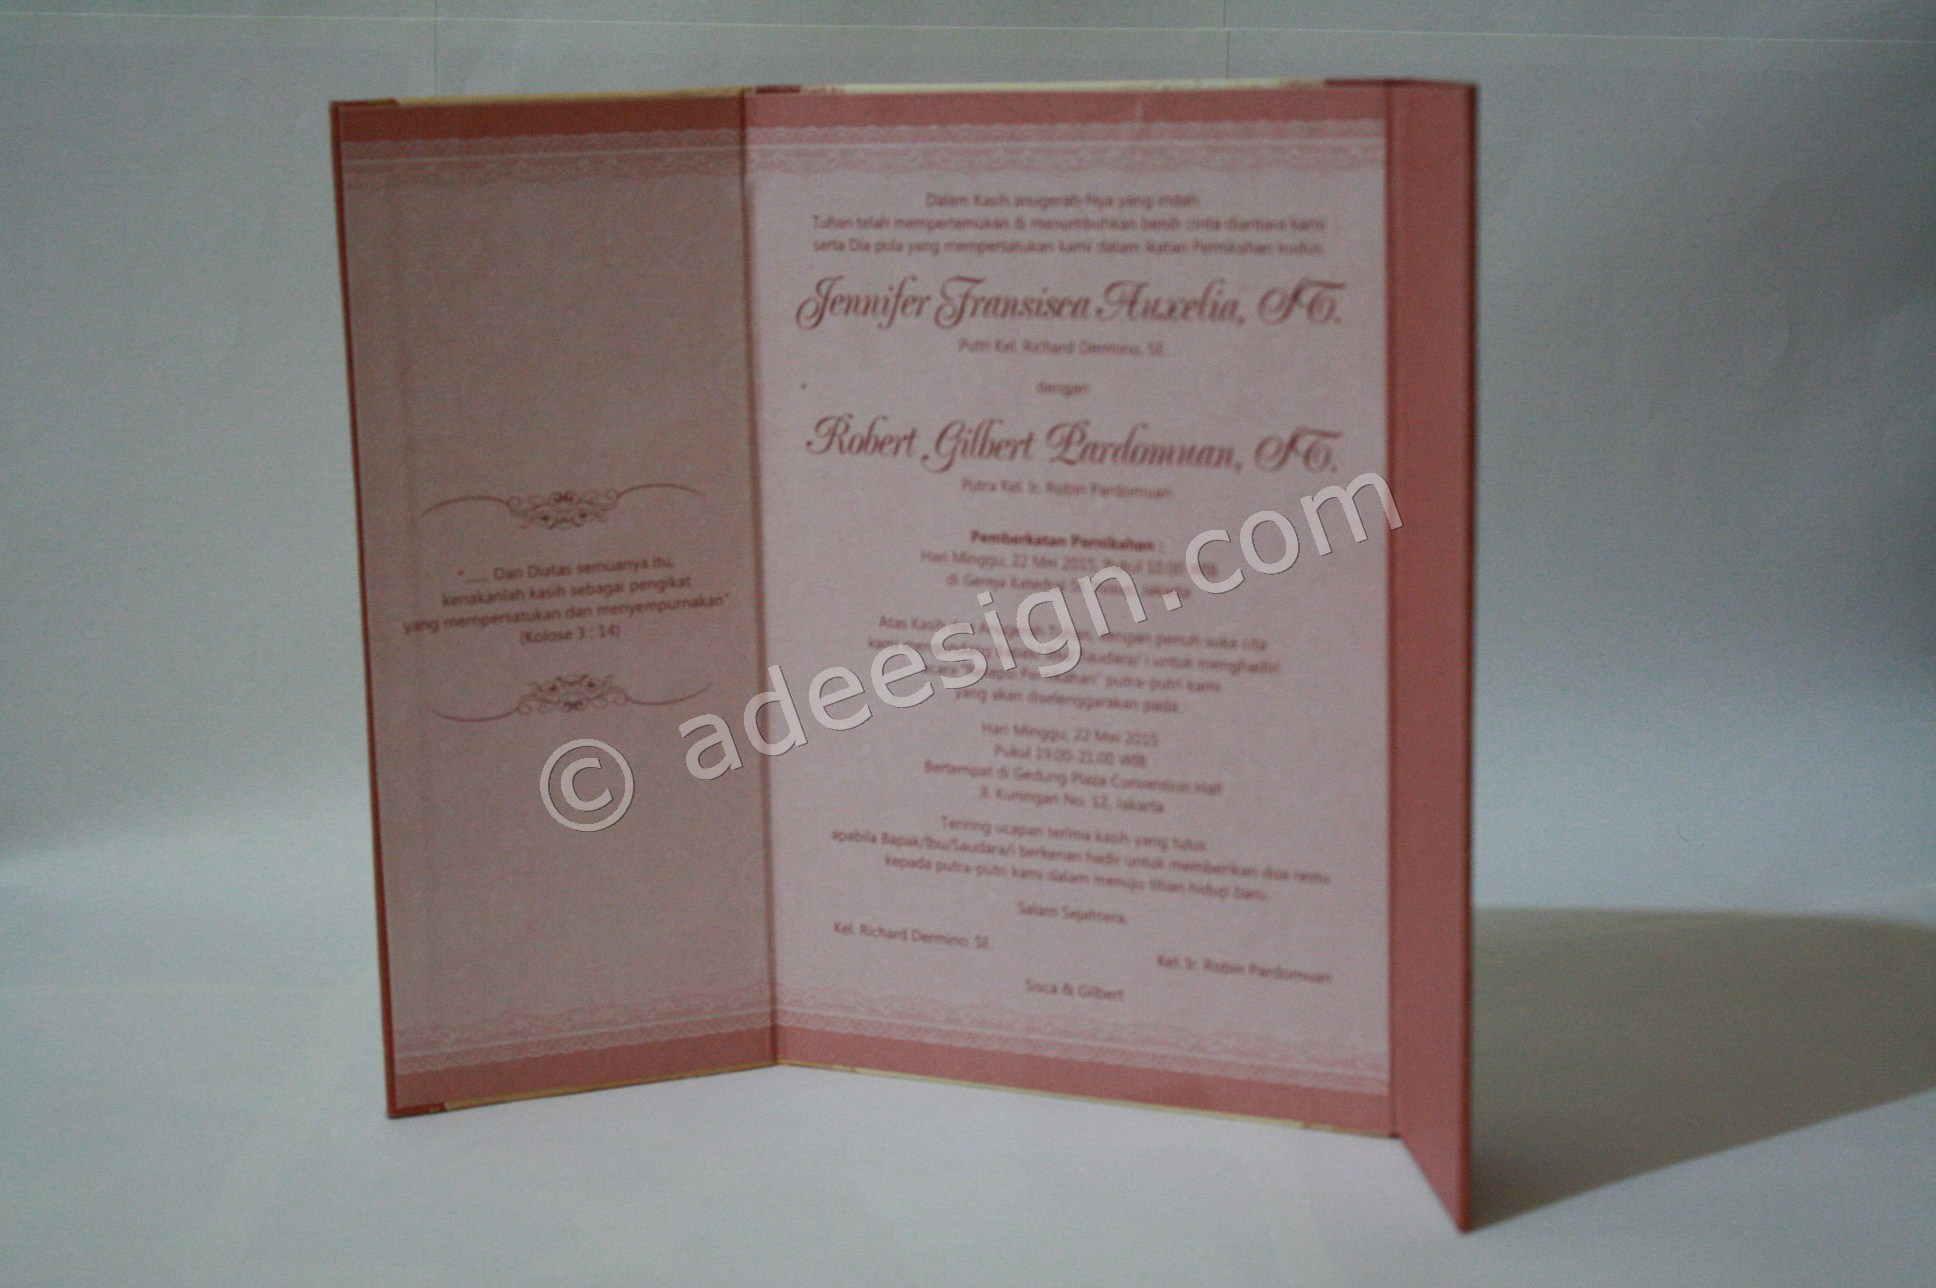 Undangan Pernikahan Hard Cover Sisca dan Gilbert 4 - Percetakan Wedding Invitations Eksklusif di Dukuh Setro